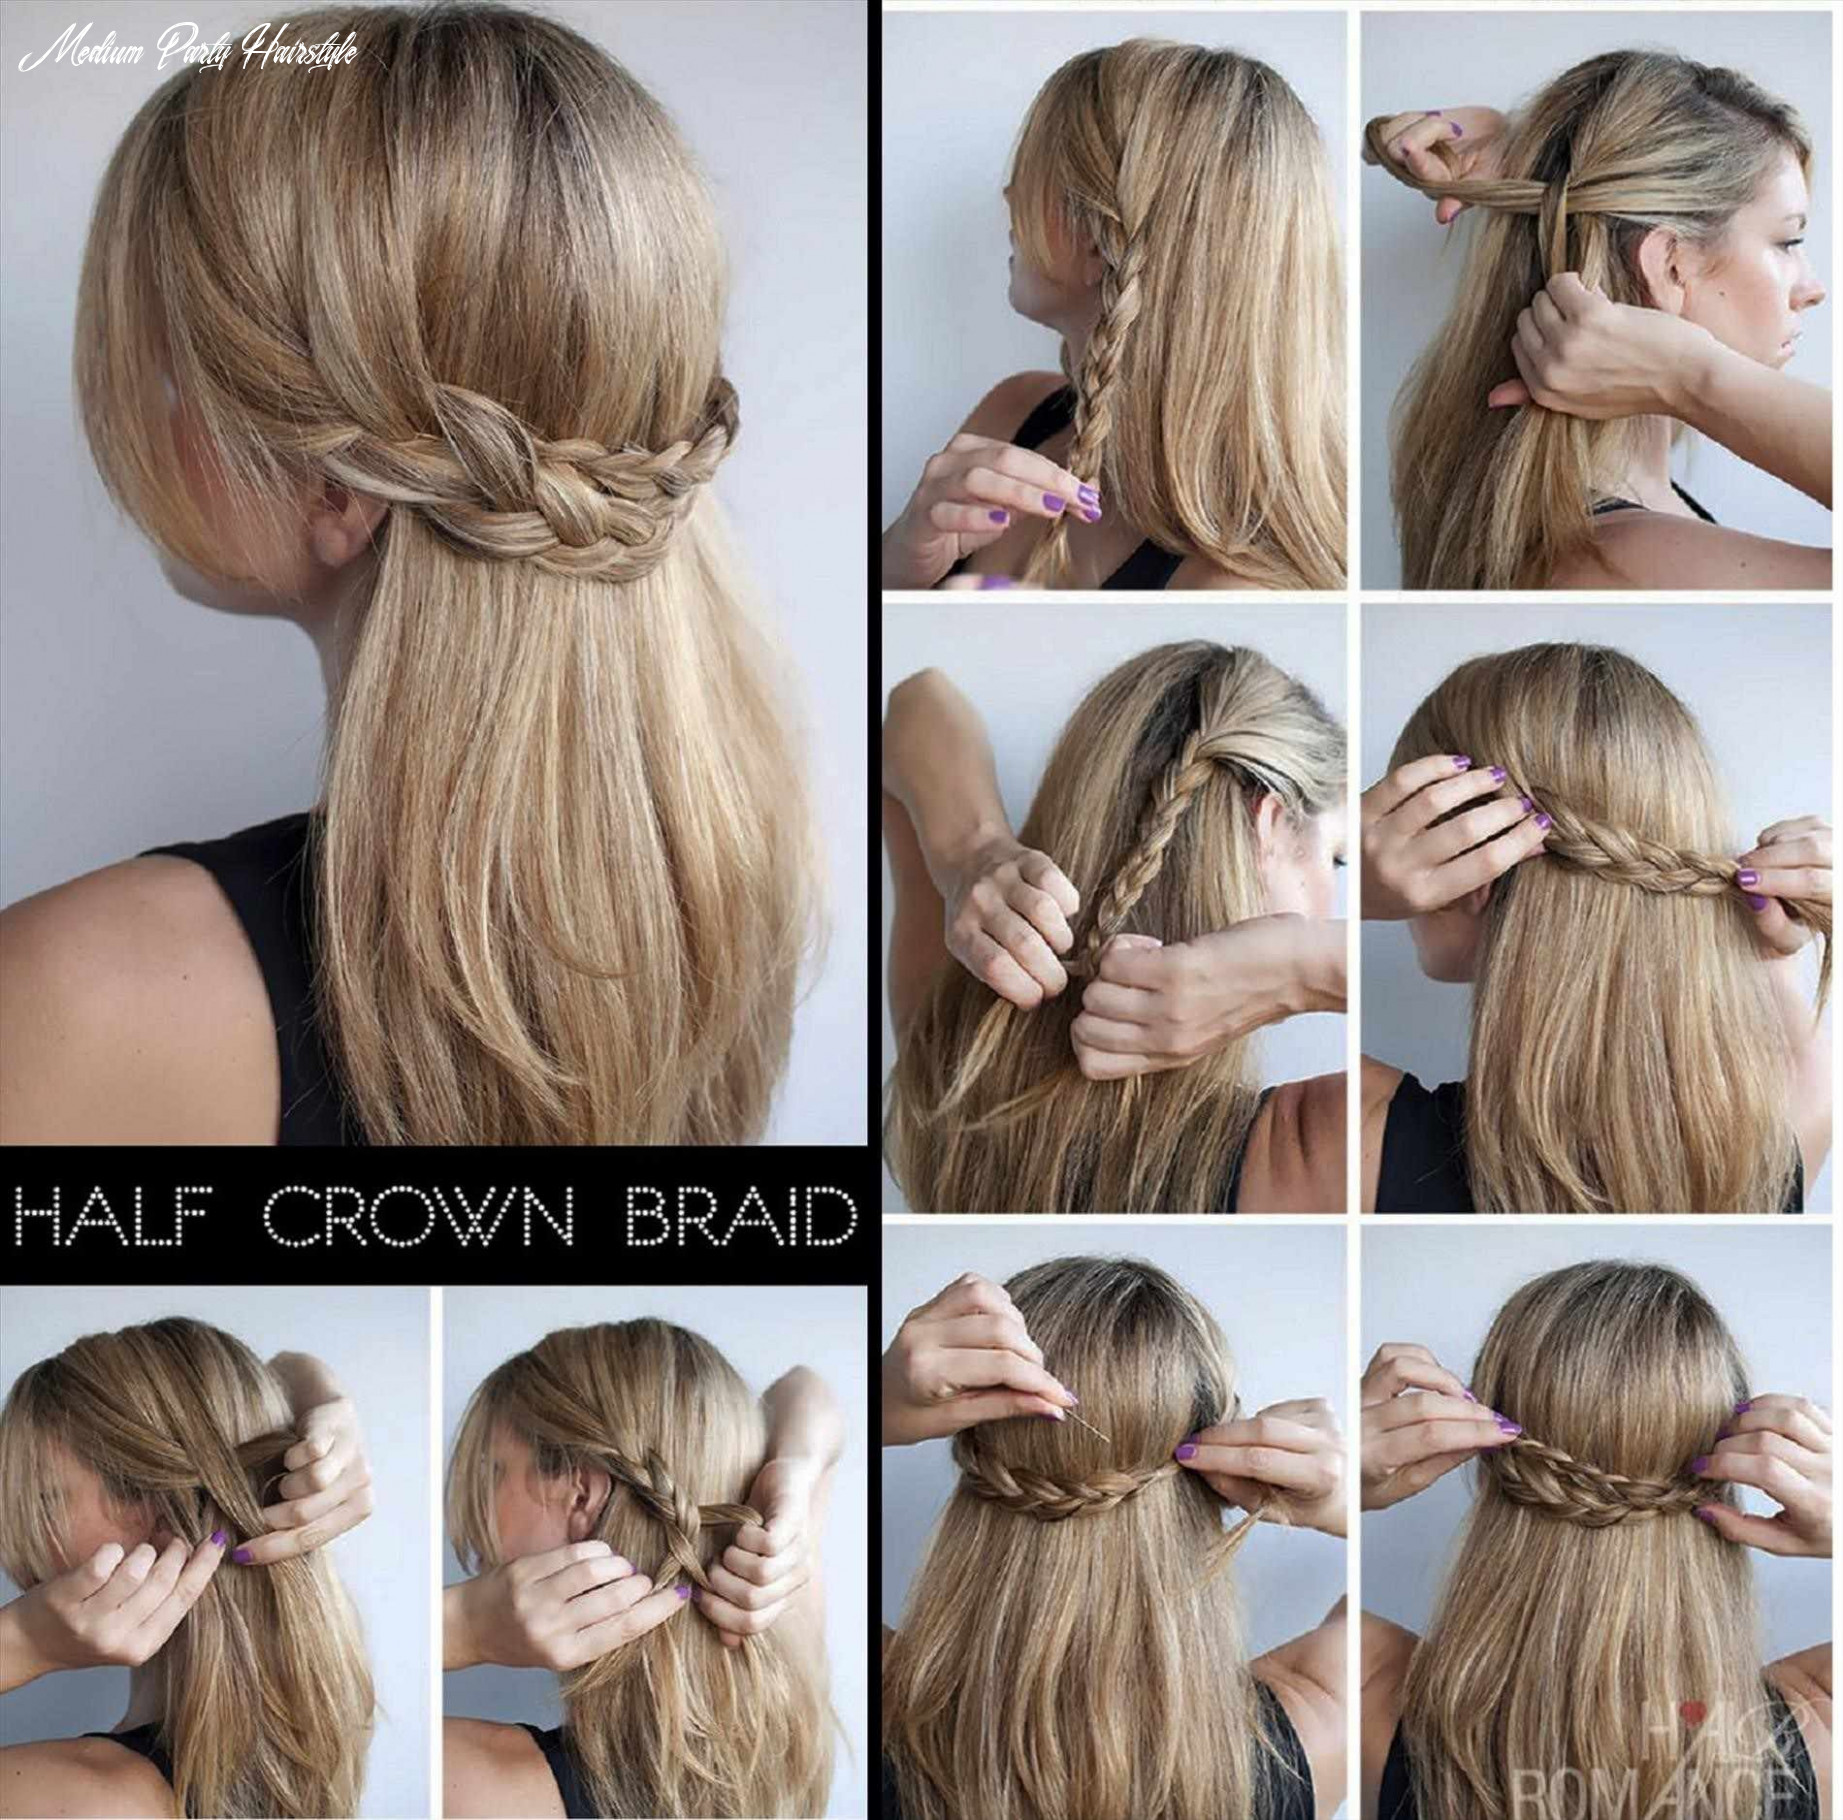 10 easy rules of simple hairstyle for party | cute blonde hair